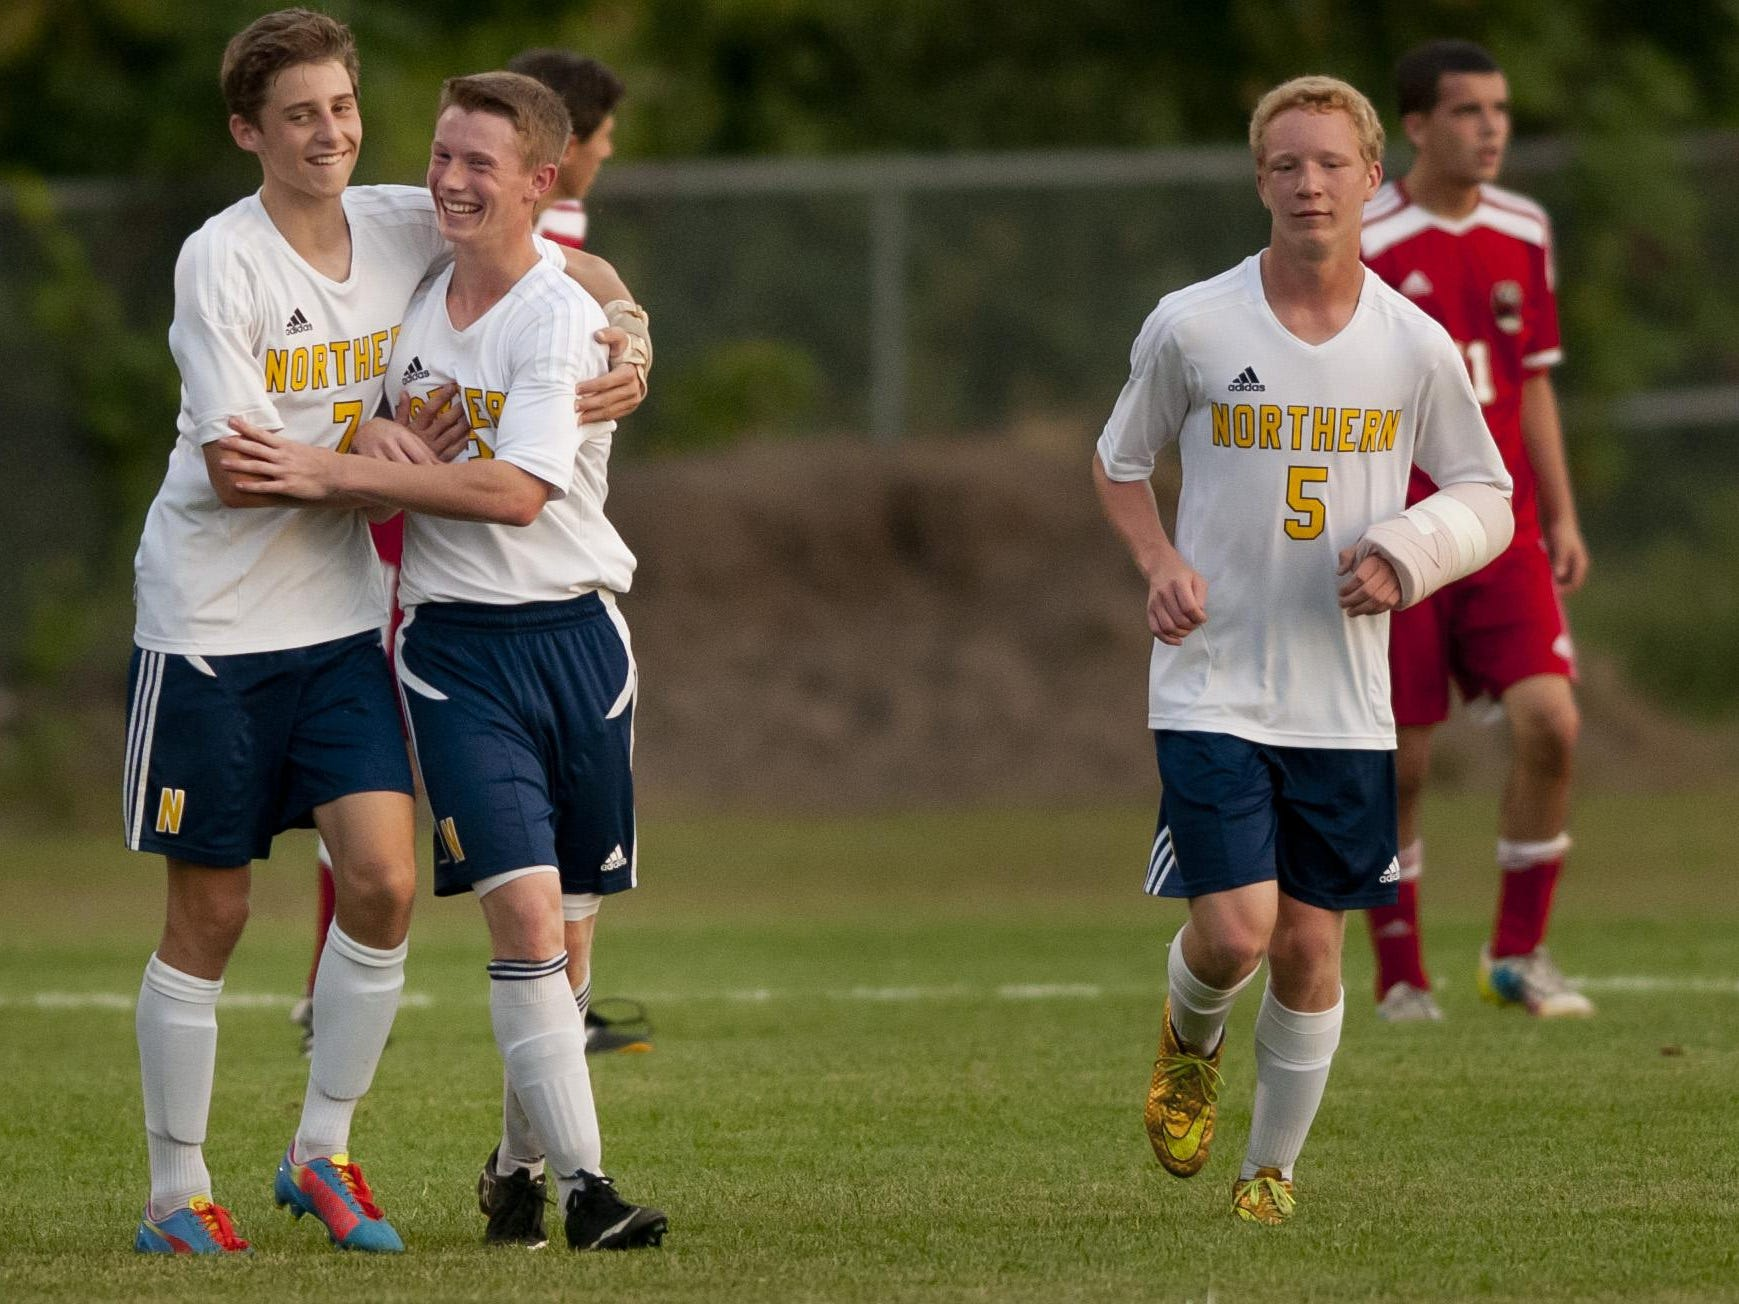 Port Huron Northern junior Jeremy Sayers, center, celebrates scoring a goal with junior James Robertson during a soccer game Thursday, September 24, 2015 at Port Huron Northern High School.